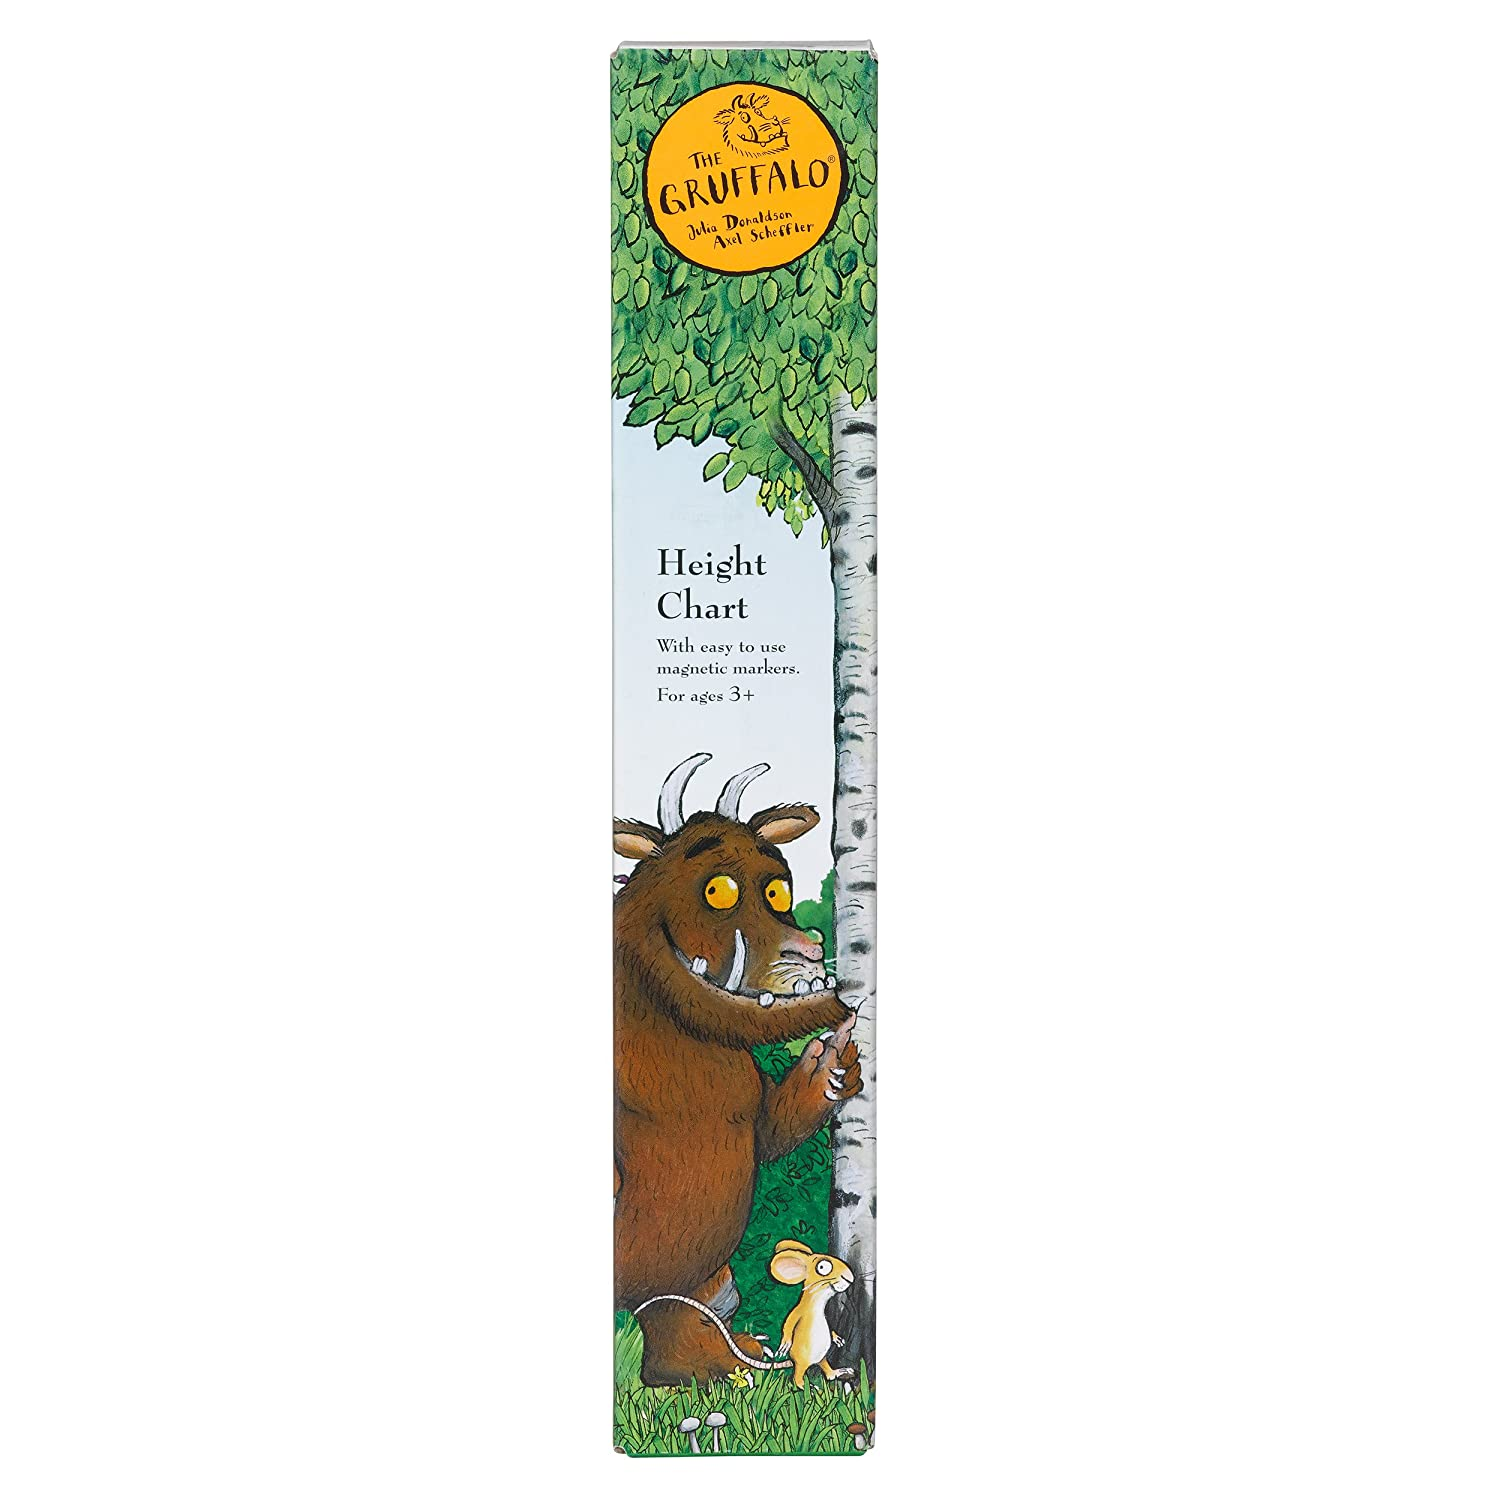 Gruffalo Height Chart Wild & Wolf Ltd (Baby) GRU057